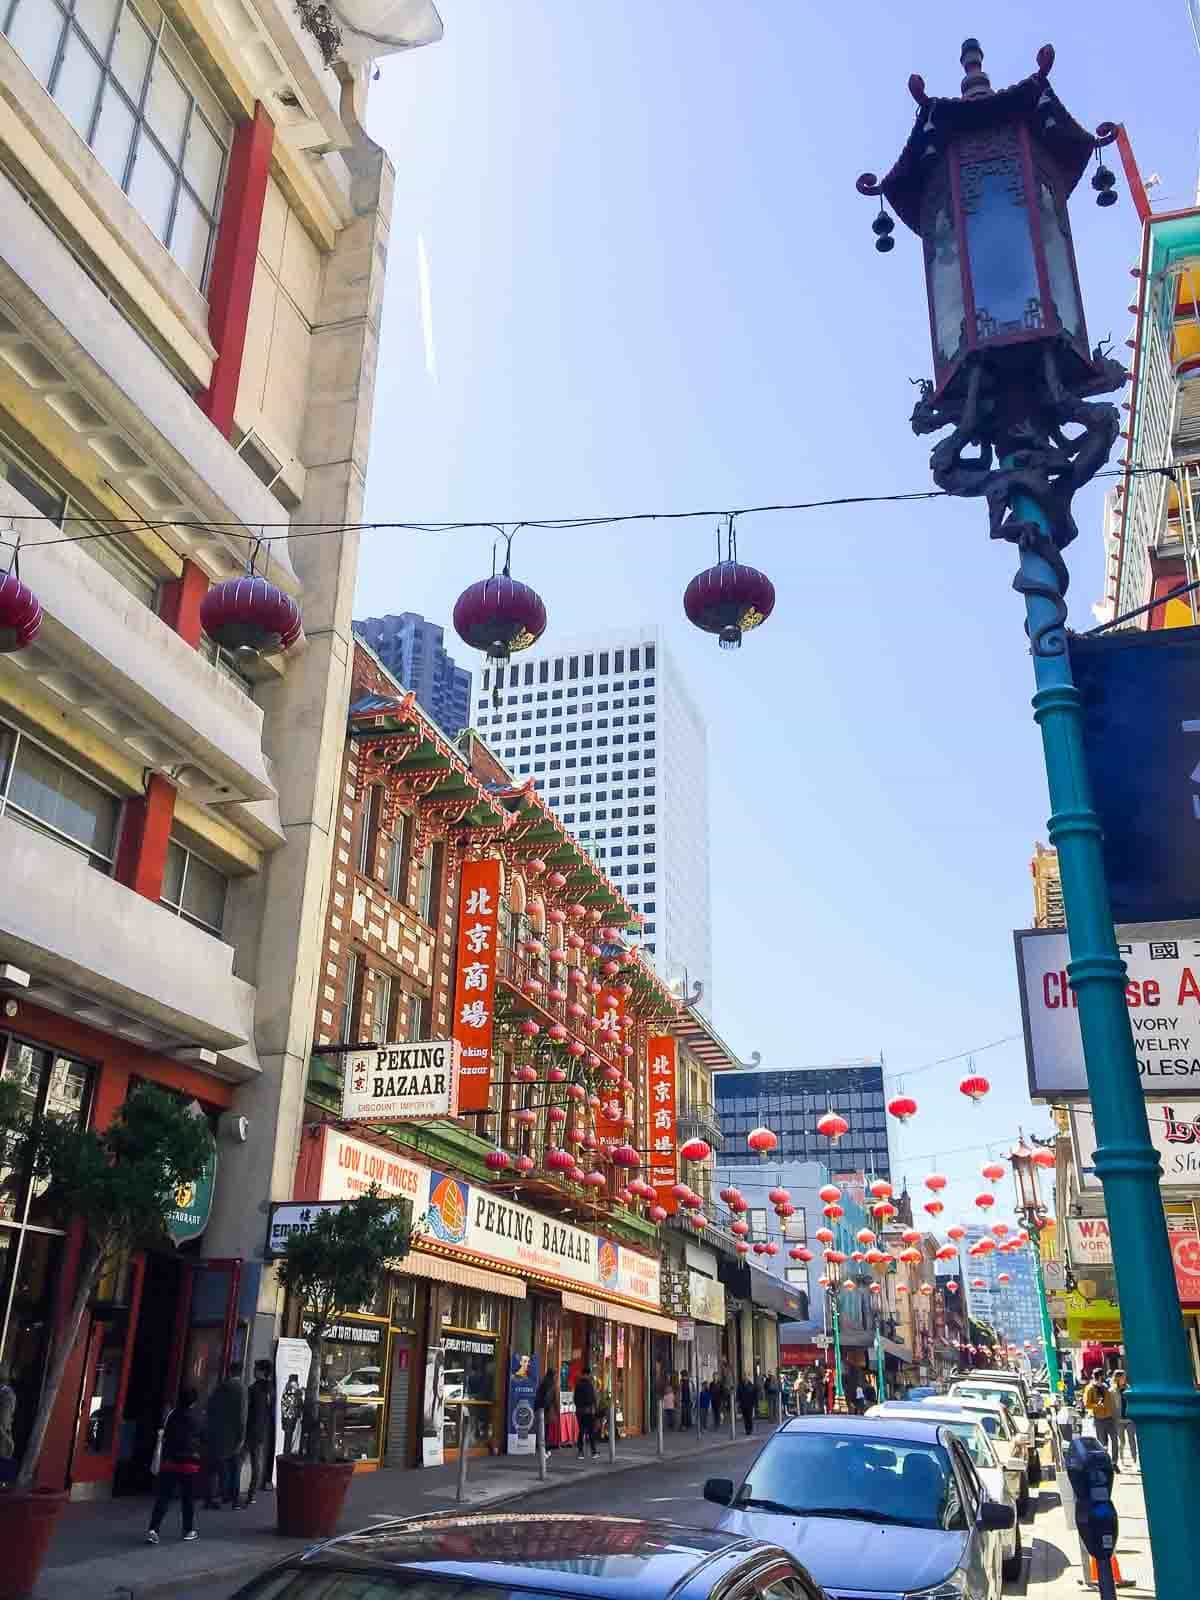 San Francisco Chinatown. A great activity in San Francisco!